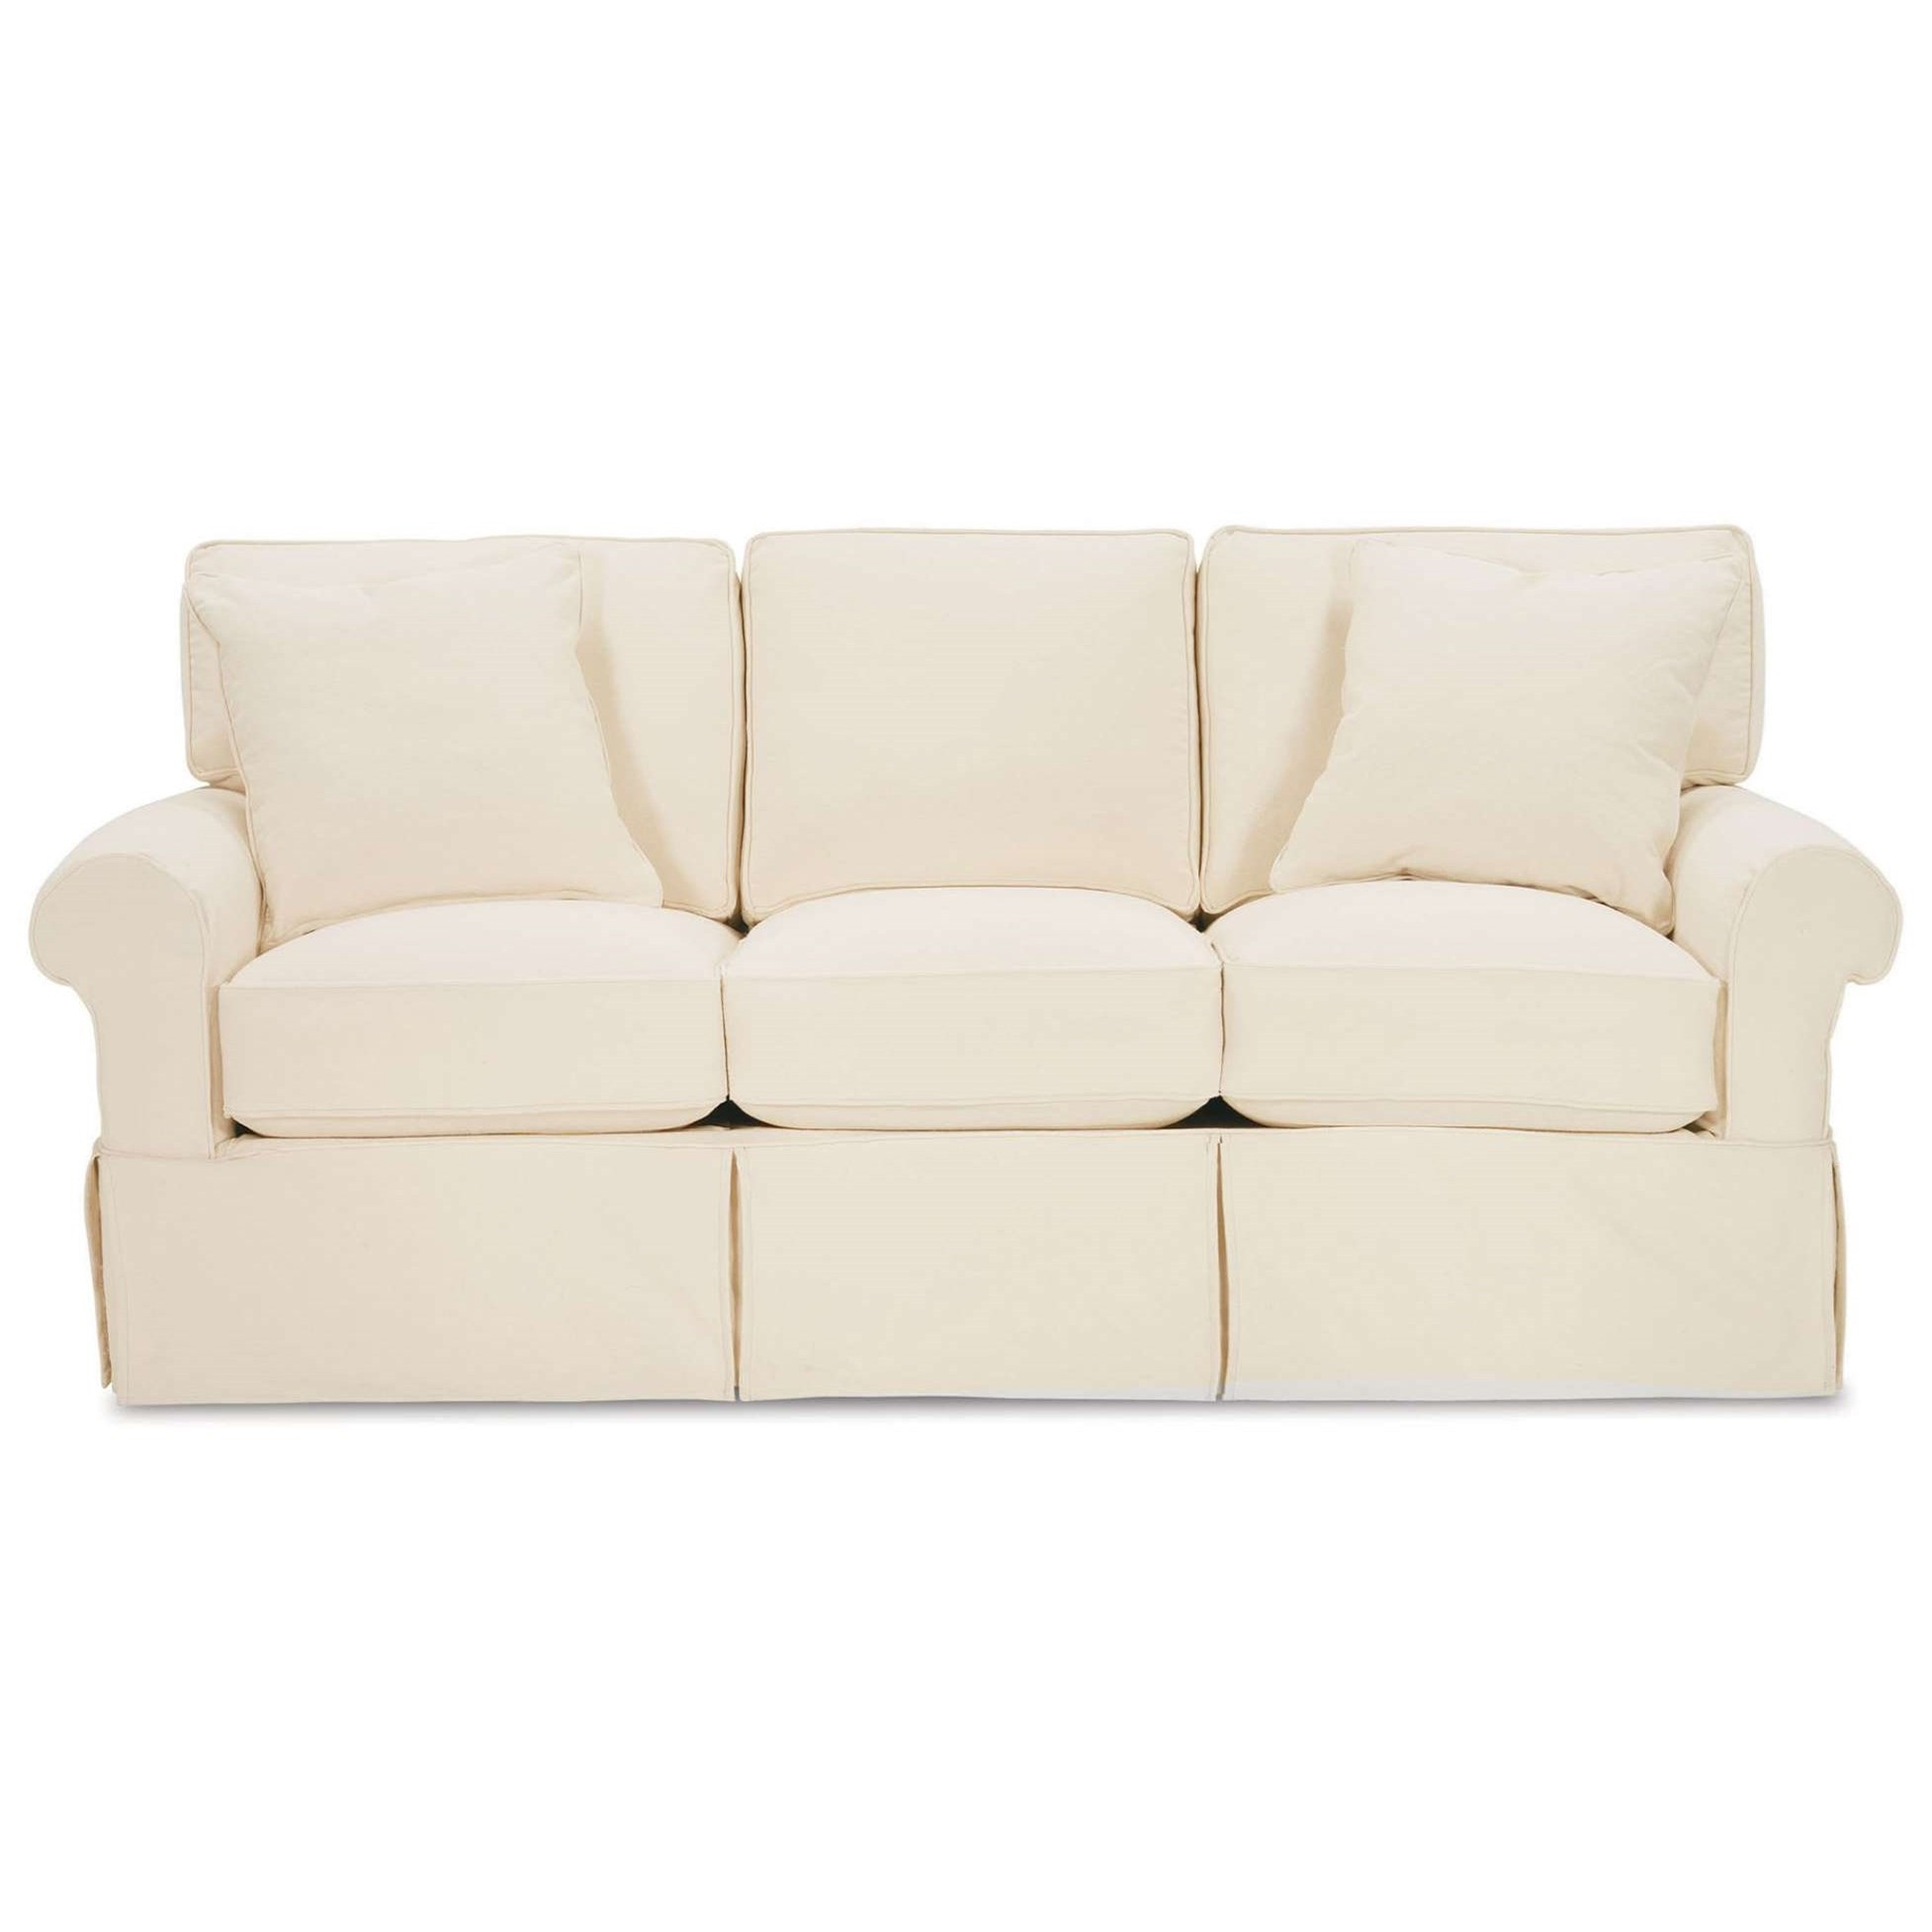 Nantucket  Casual Sofa with Rolled Arms by Rowe at Baer's Furniture